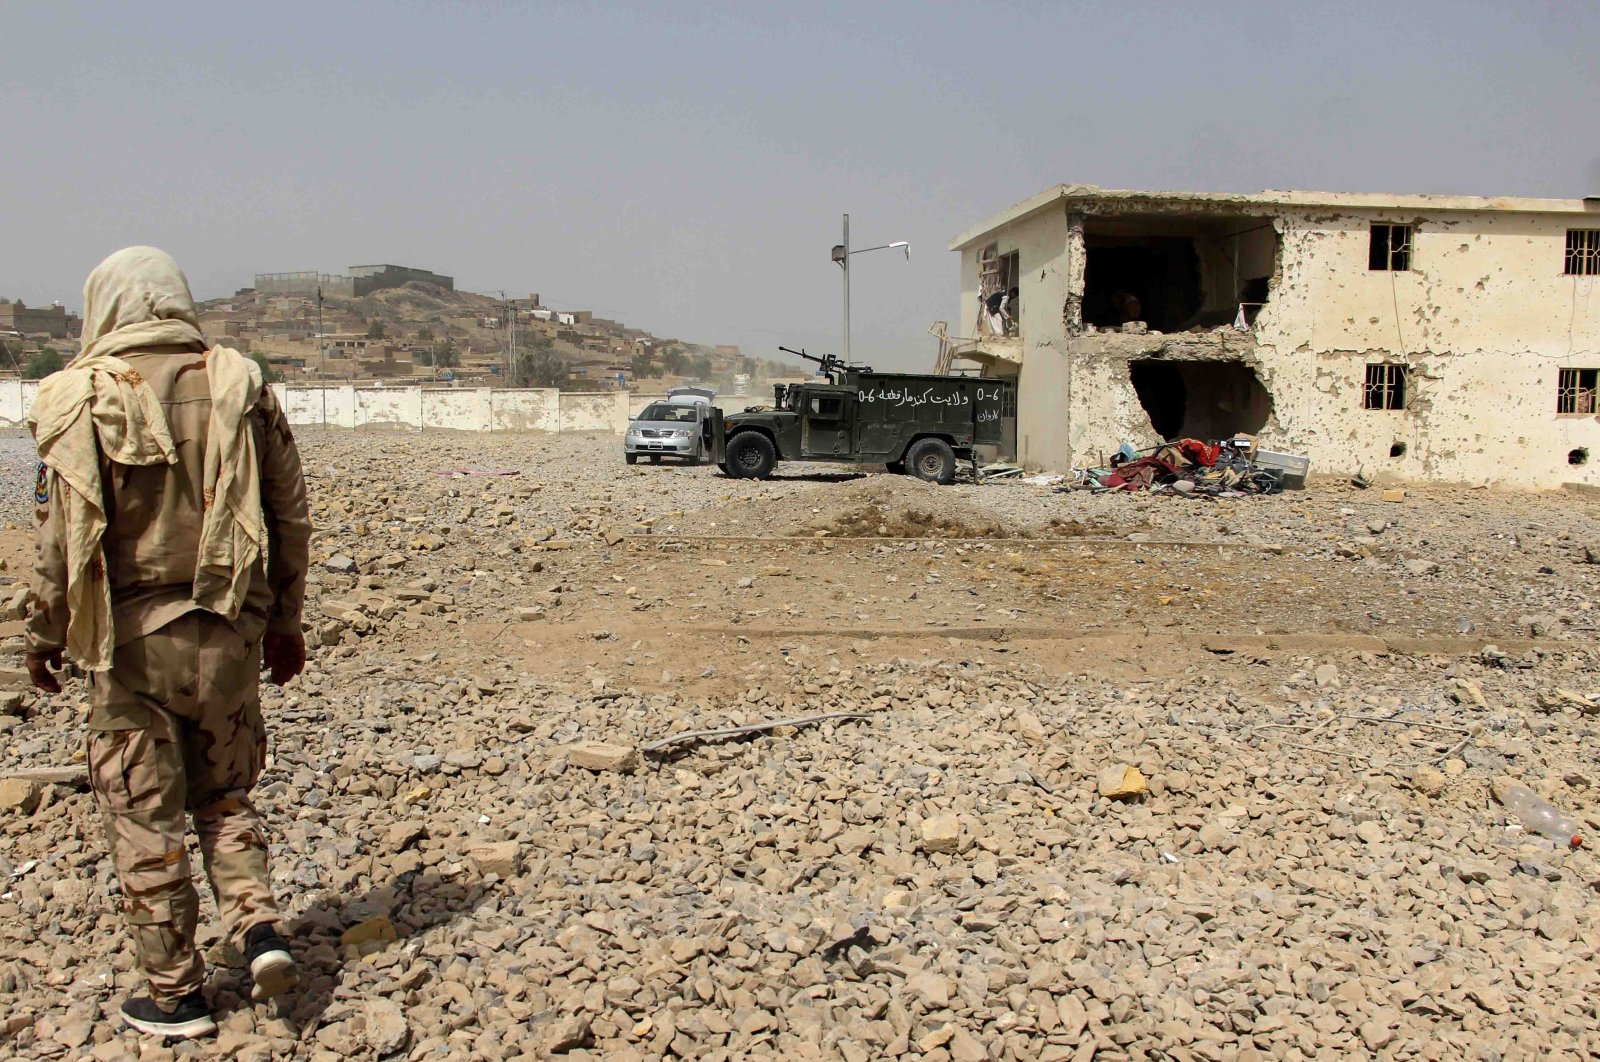 Afghan security officials inspect the scene of a bomb blast in Kandahar, Afghanistan, July 6, 2021. (EPA Photo)